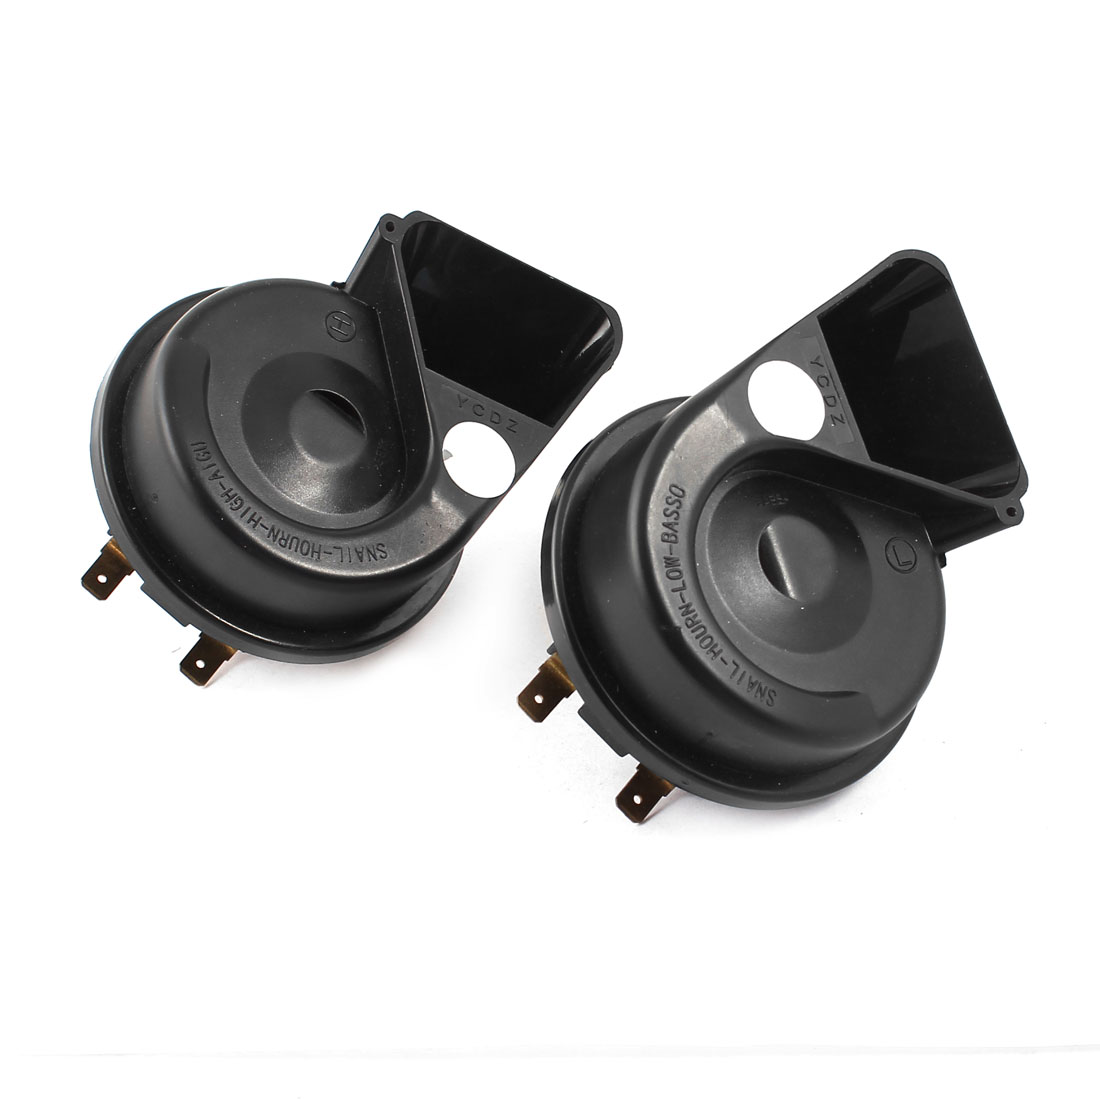 2 Pcs DC 12V Car Auto Electric Snail Shape Horn Siren Black